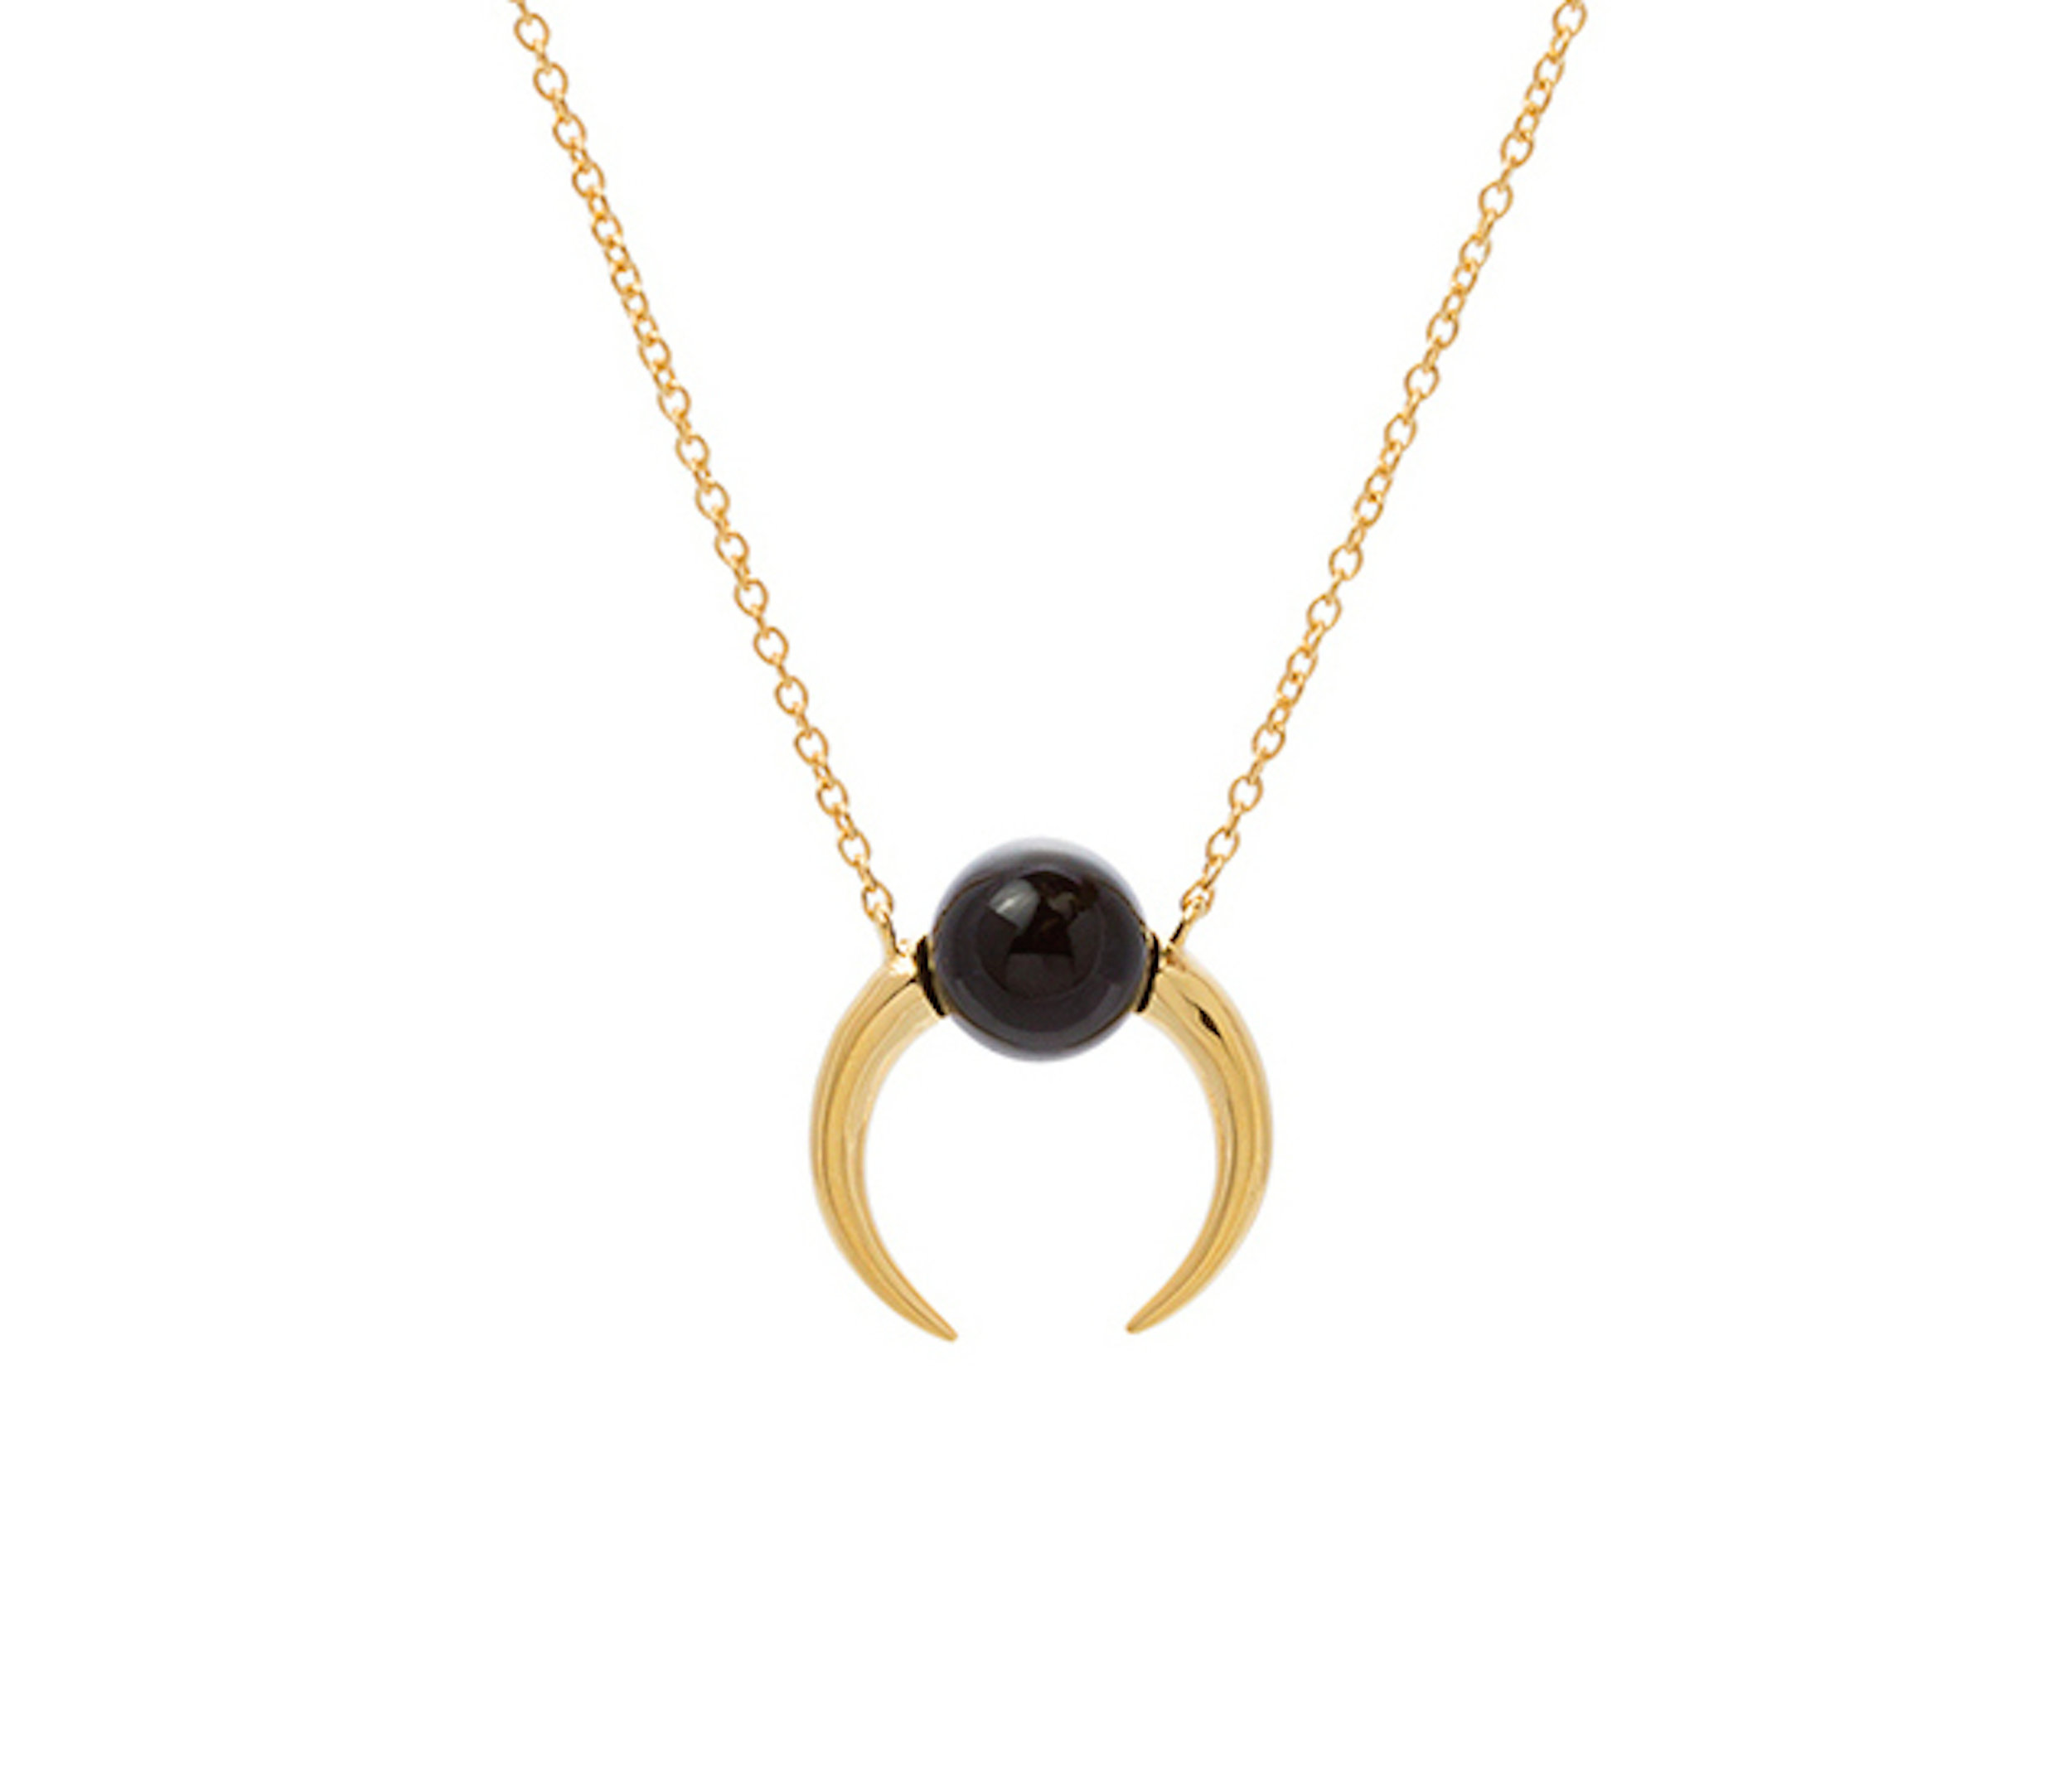 Black agate double tusk necklace